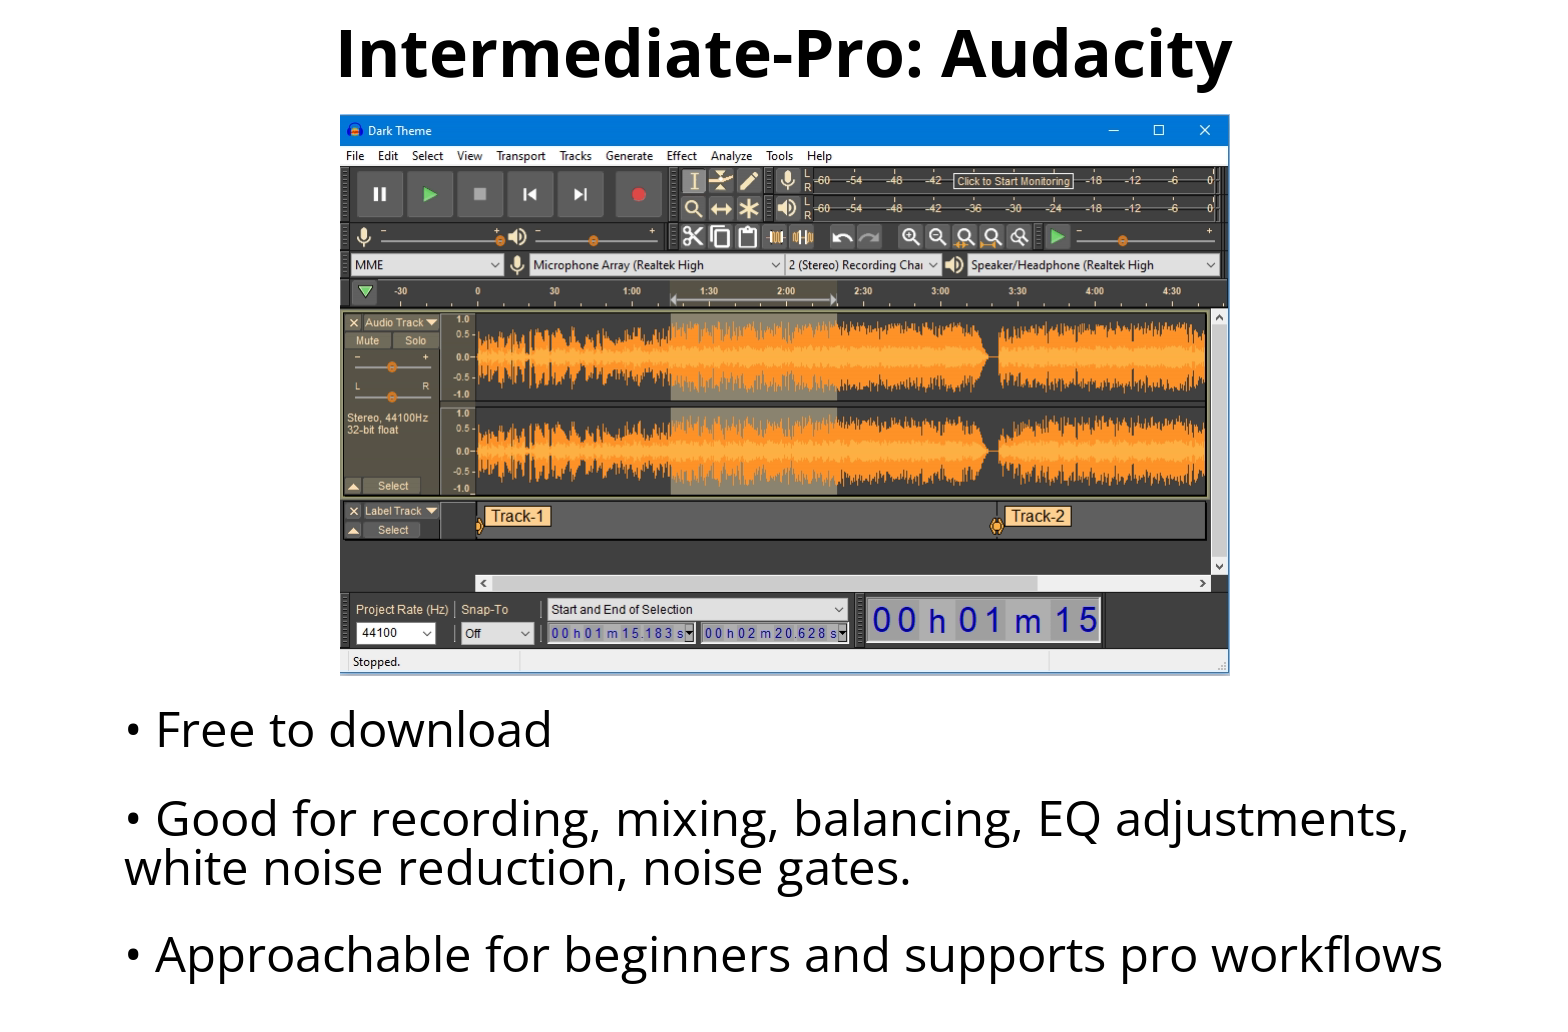 A graphic summarizing the features in Audacity.